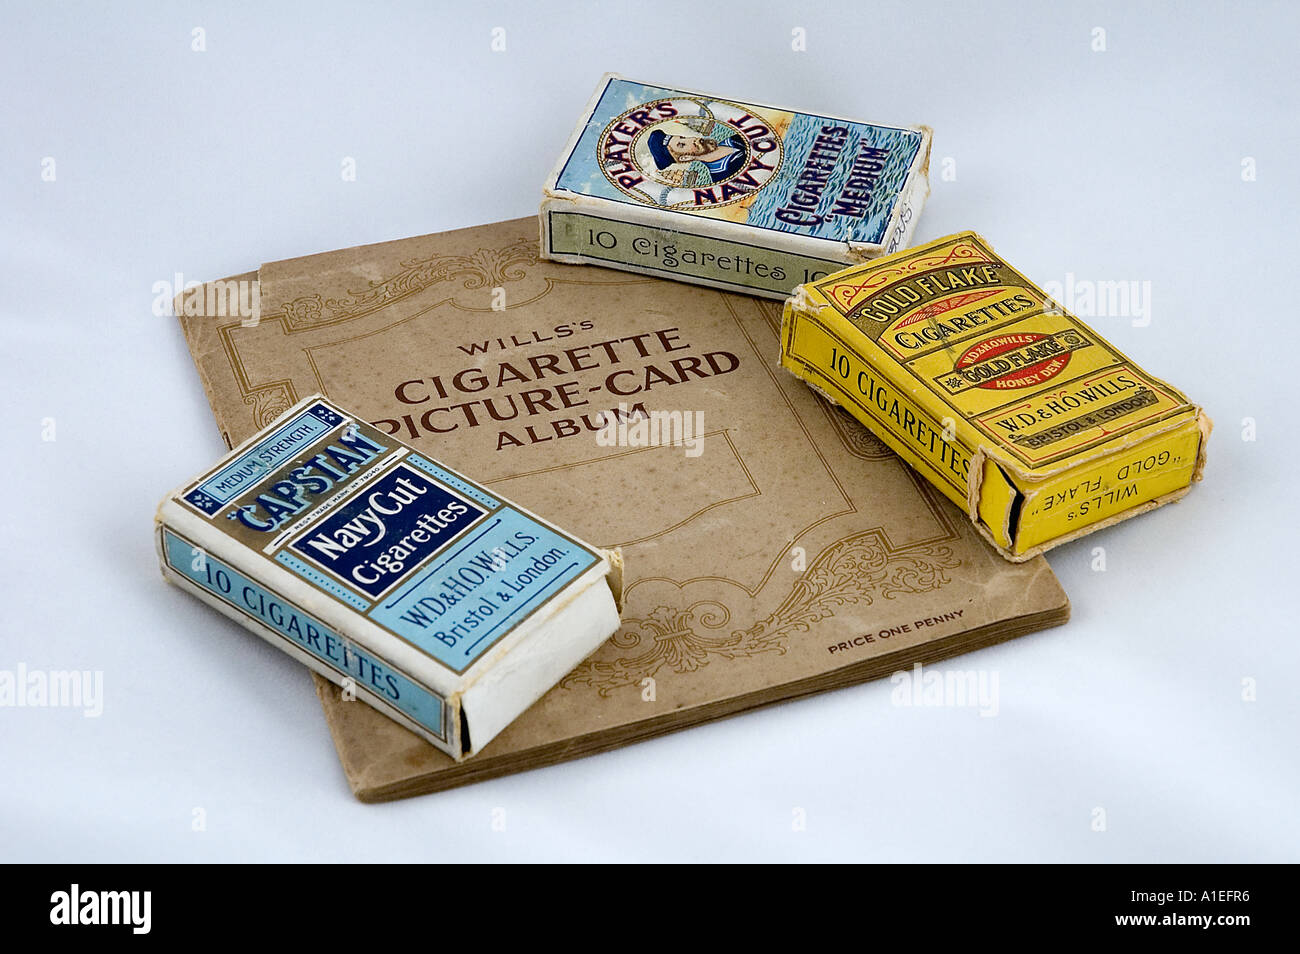 A collectors old and historical cigarette packets and album all containing collectable picture cards from the 1930 - Stock Image